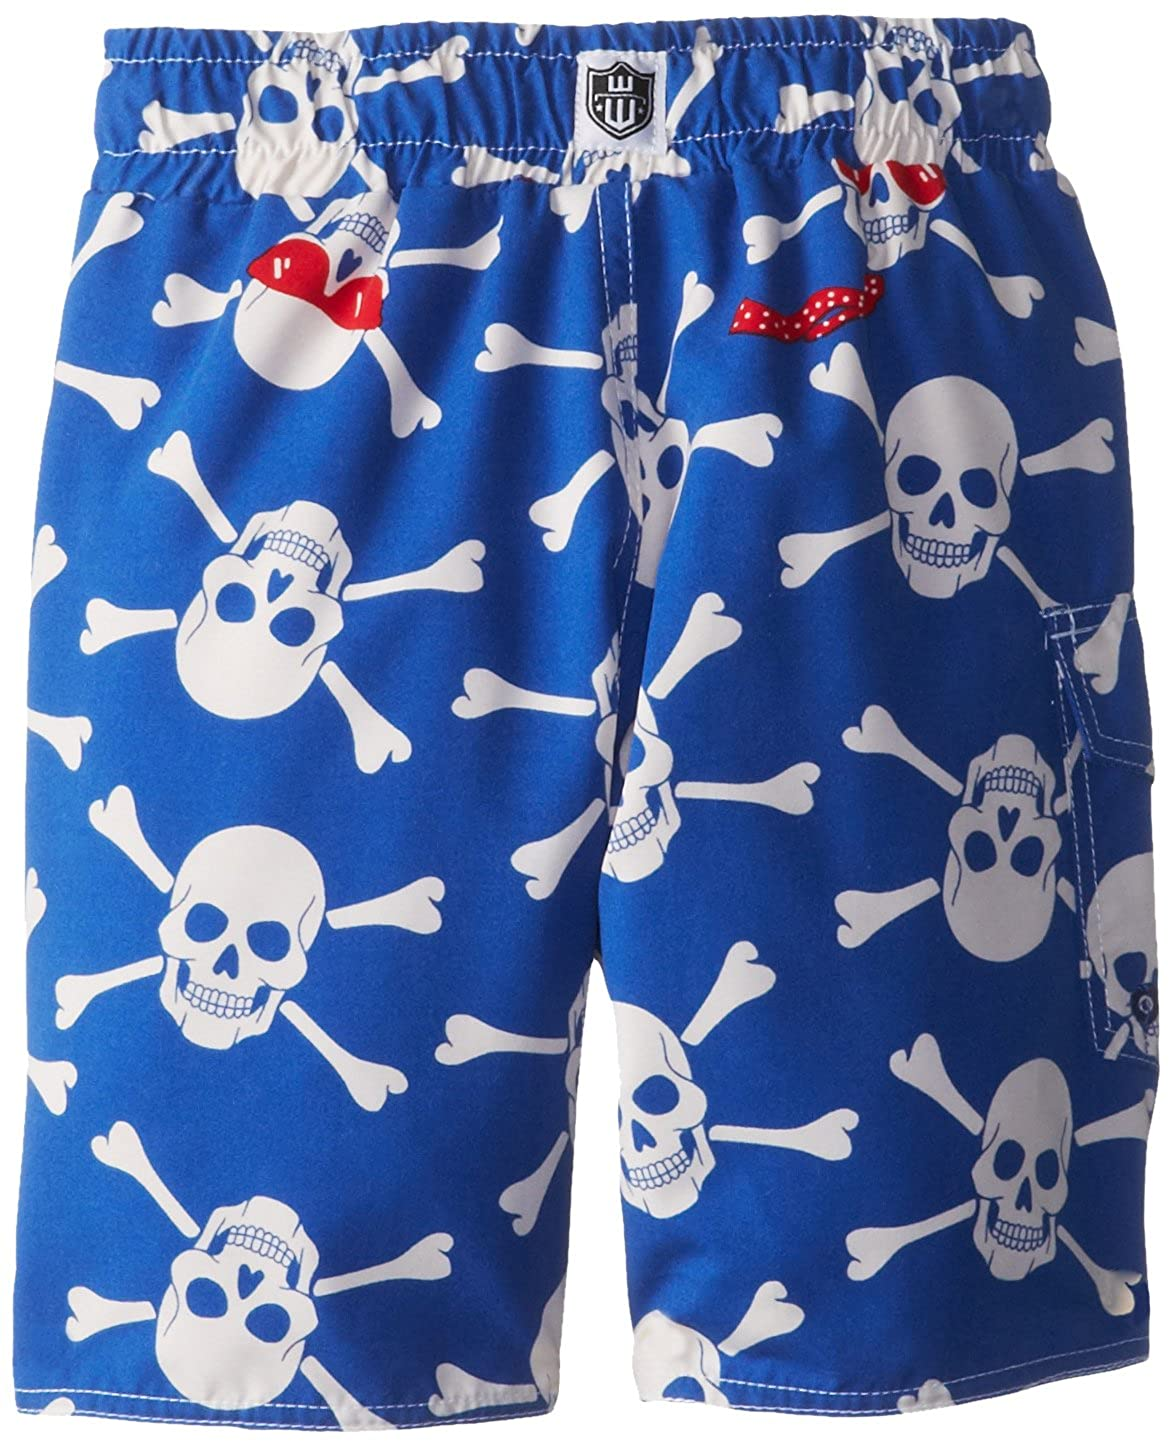 Wes /& Willy Little Boys Skull Sunglasses Swim Trunk Toddler Blue Jay 4T Wes /& Willy Boys 2-7